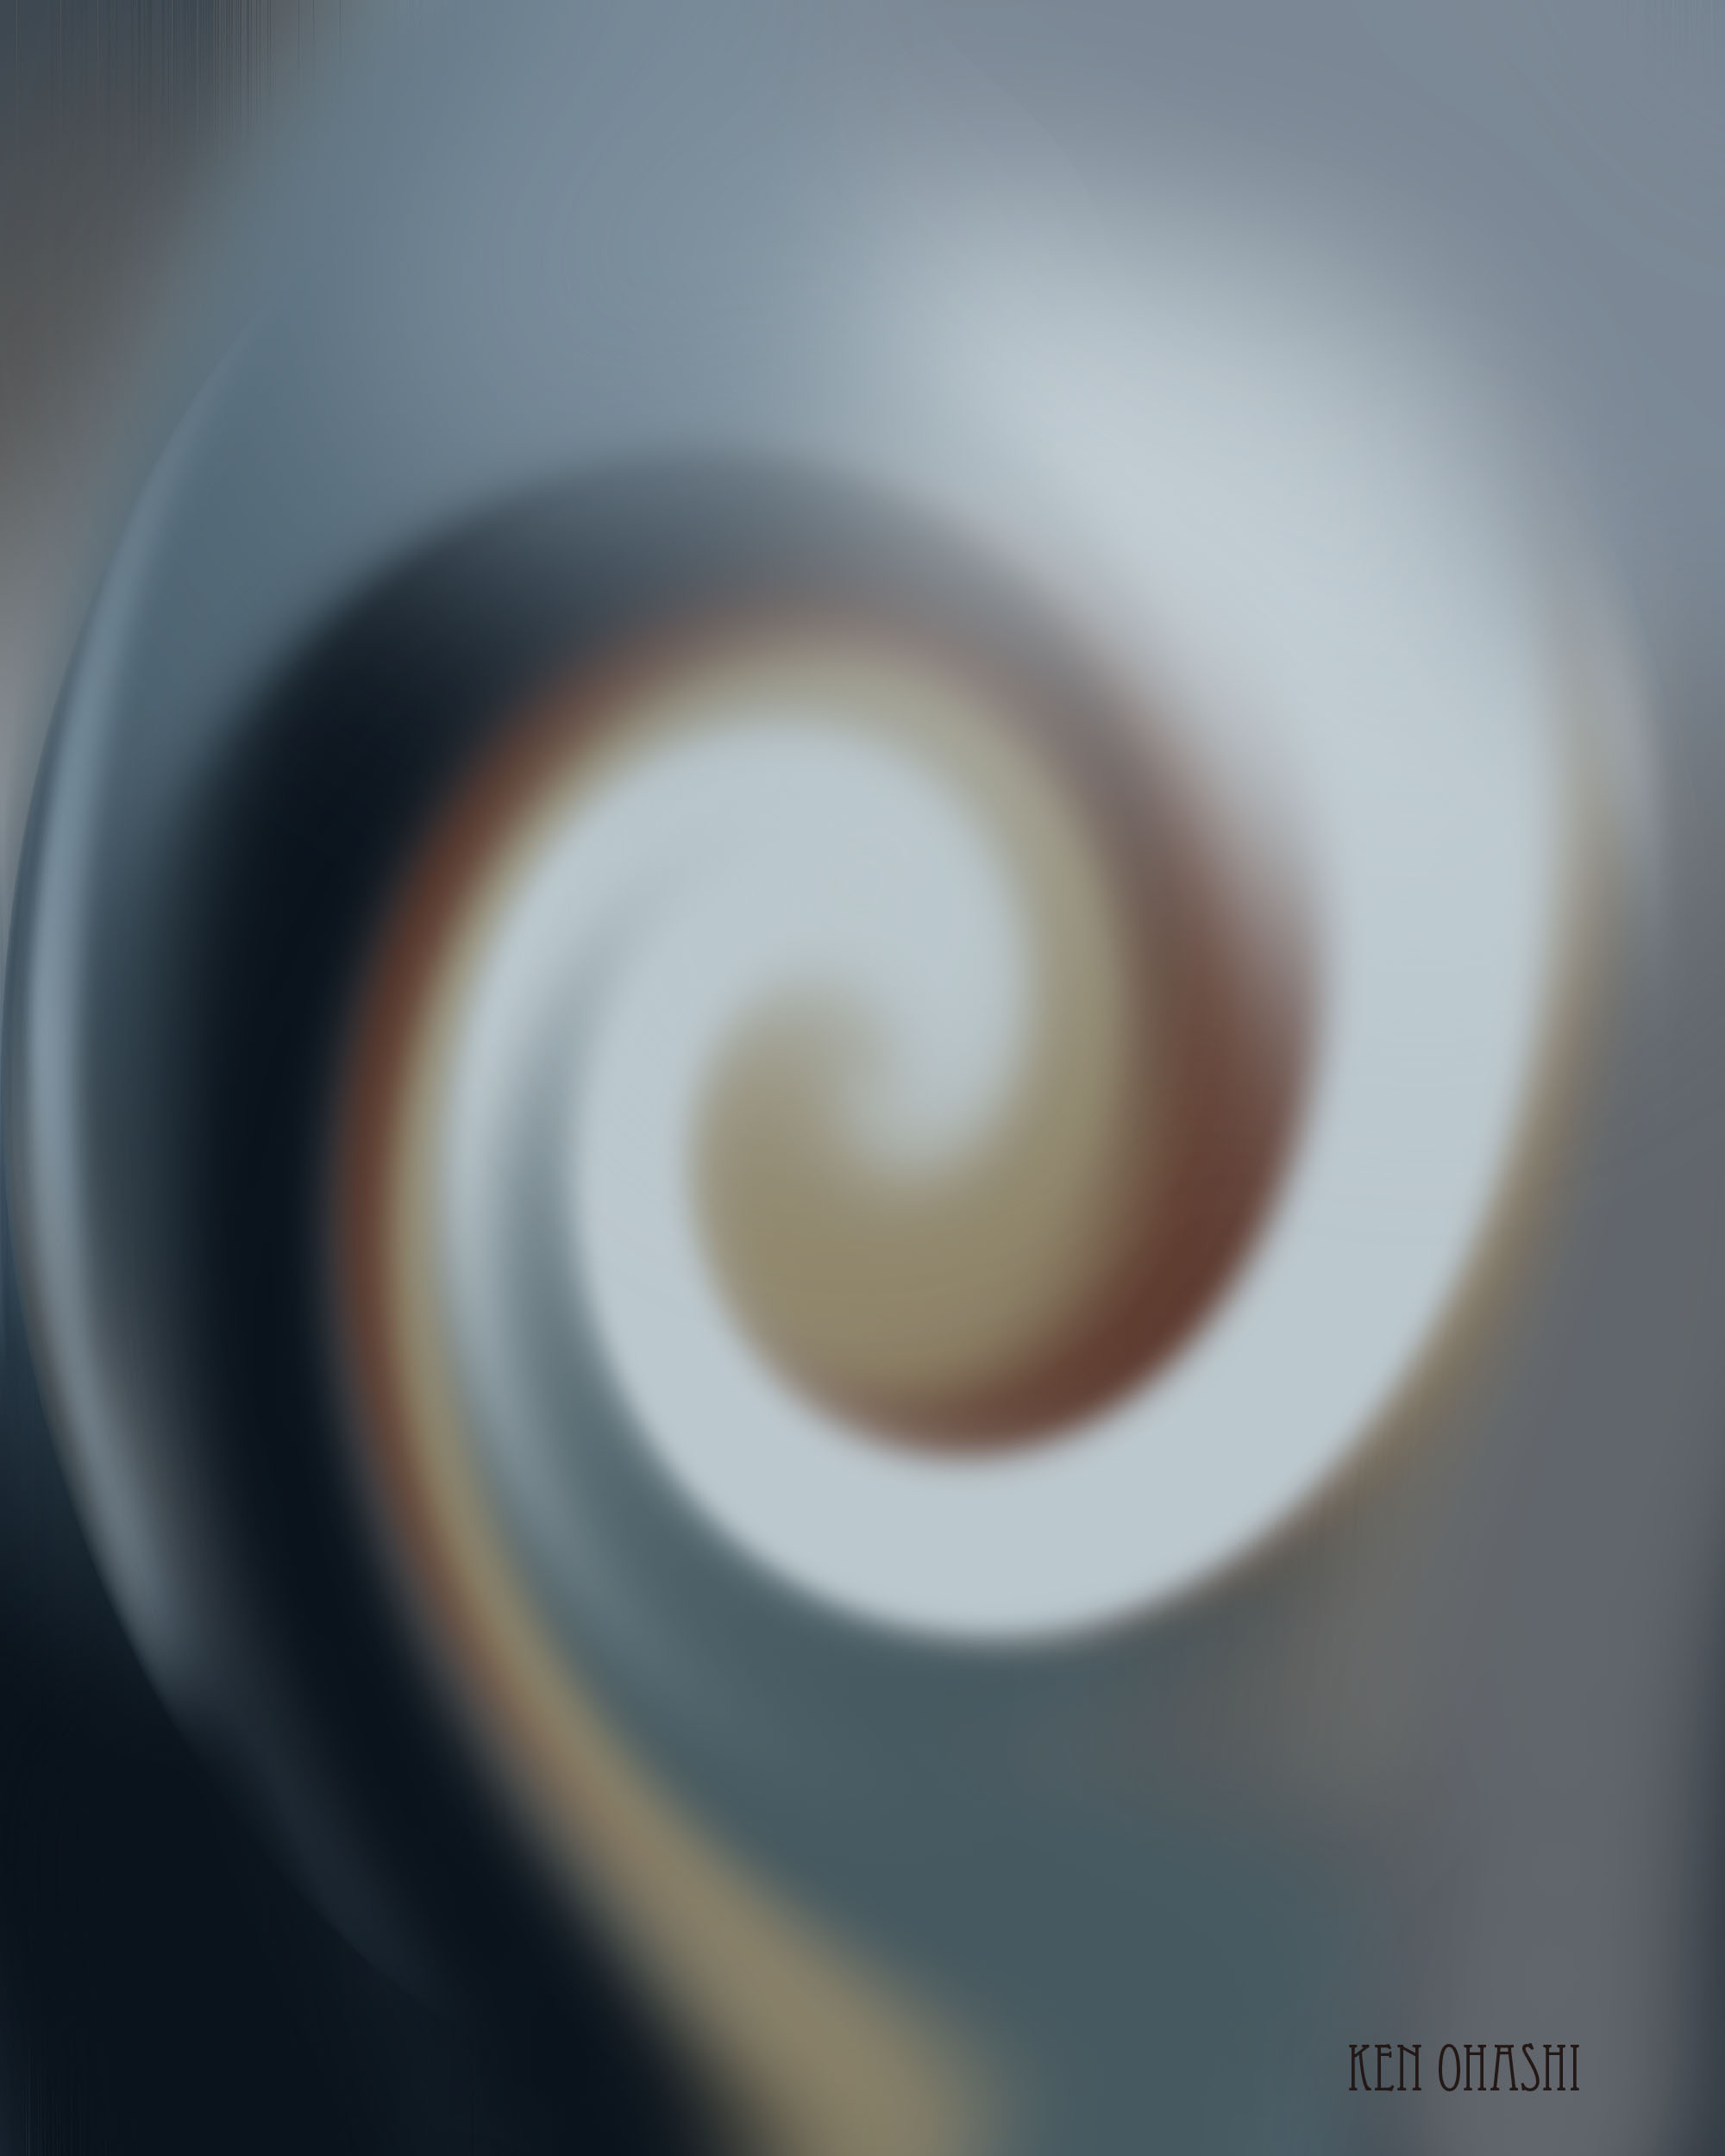 Abstraction20100803_04